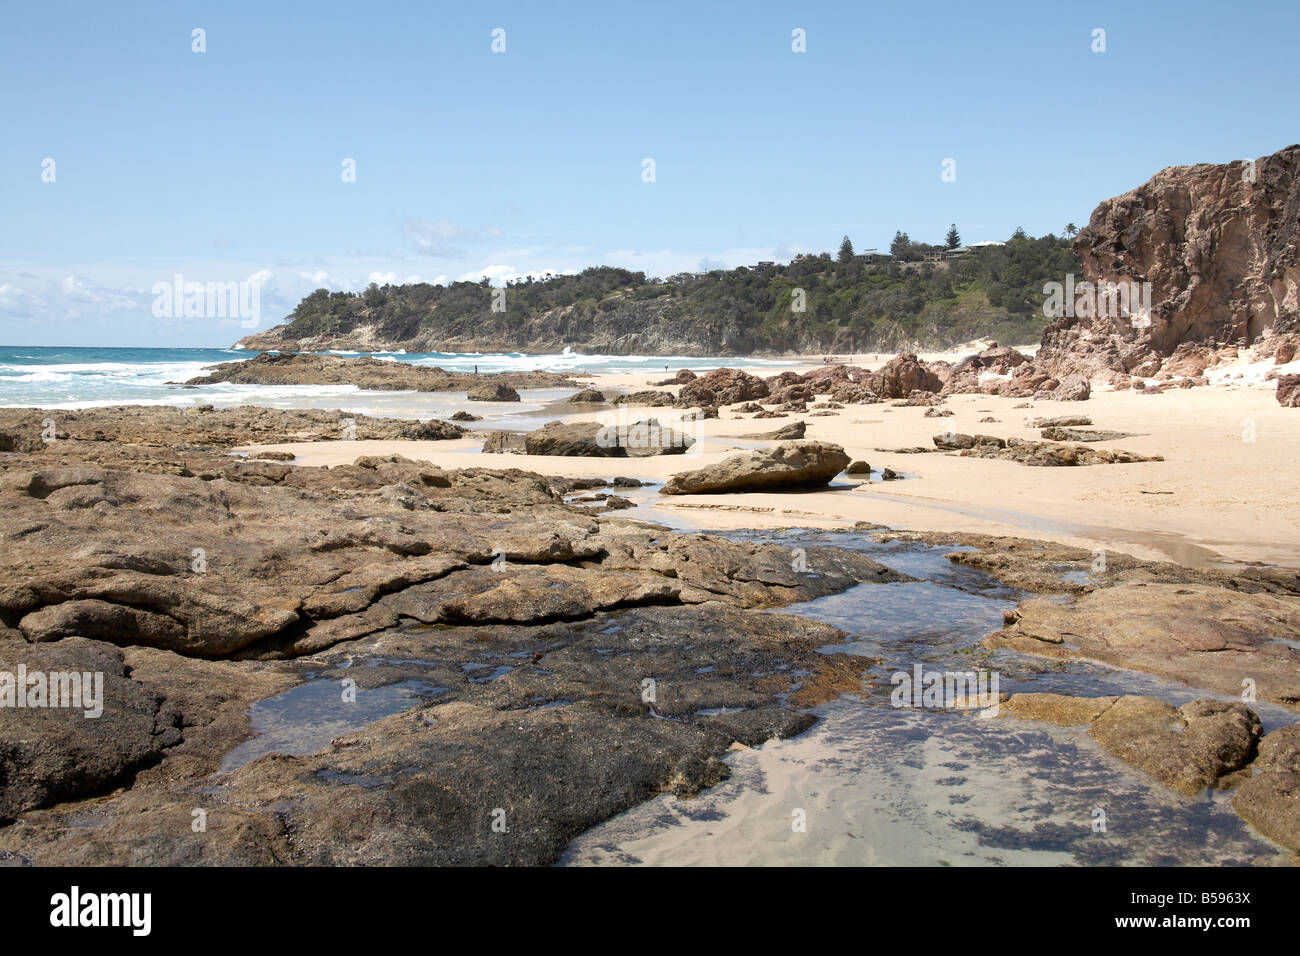 Rock pools and cliffs on Frenchmans beach North Stradbroke Island Queensland QLD Australia - Stock Image